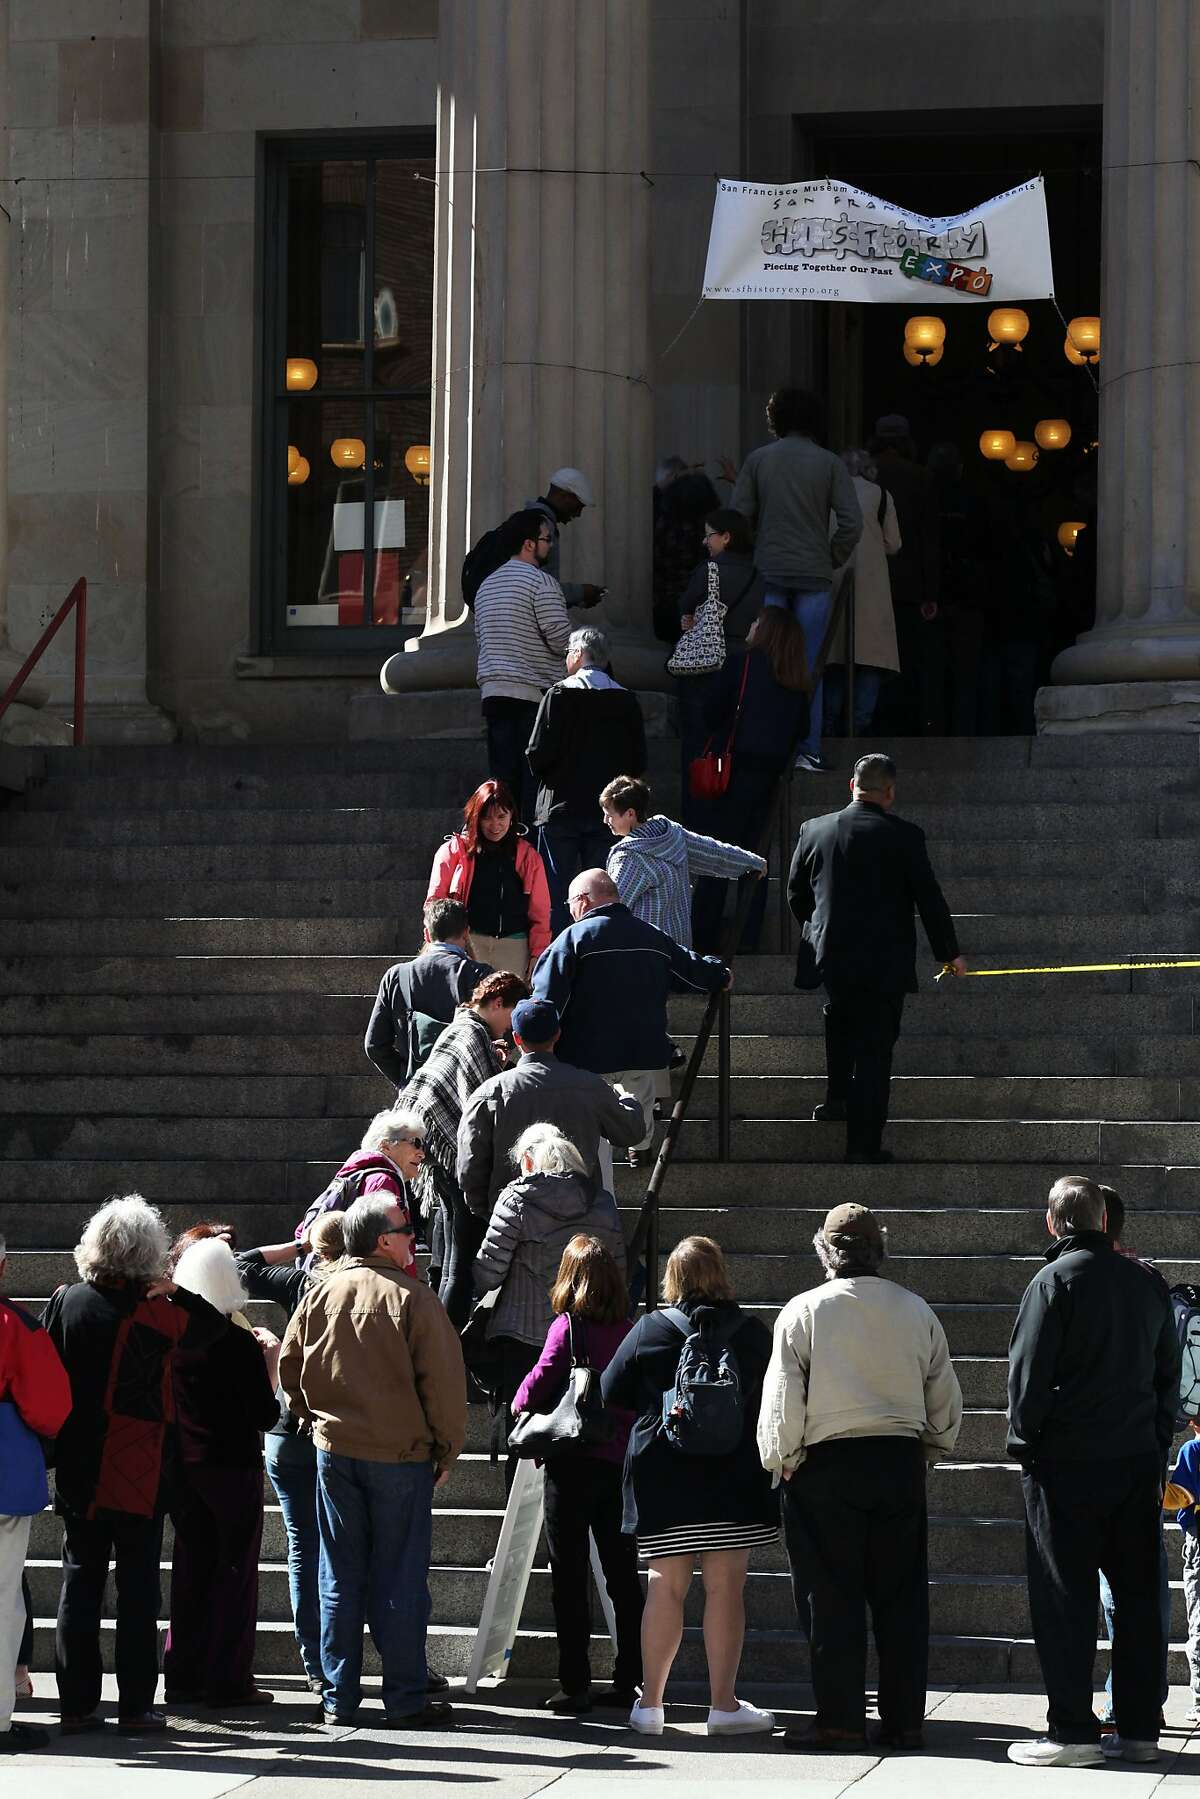 People stream into the Old Mint for SF History Expo right when it opens in San Francisco, Calif., Saturday February 28, 2015.